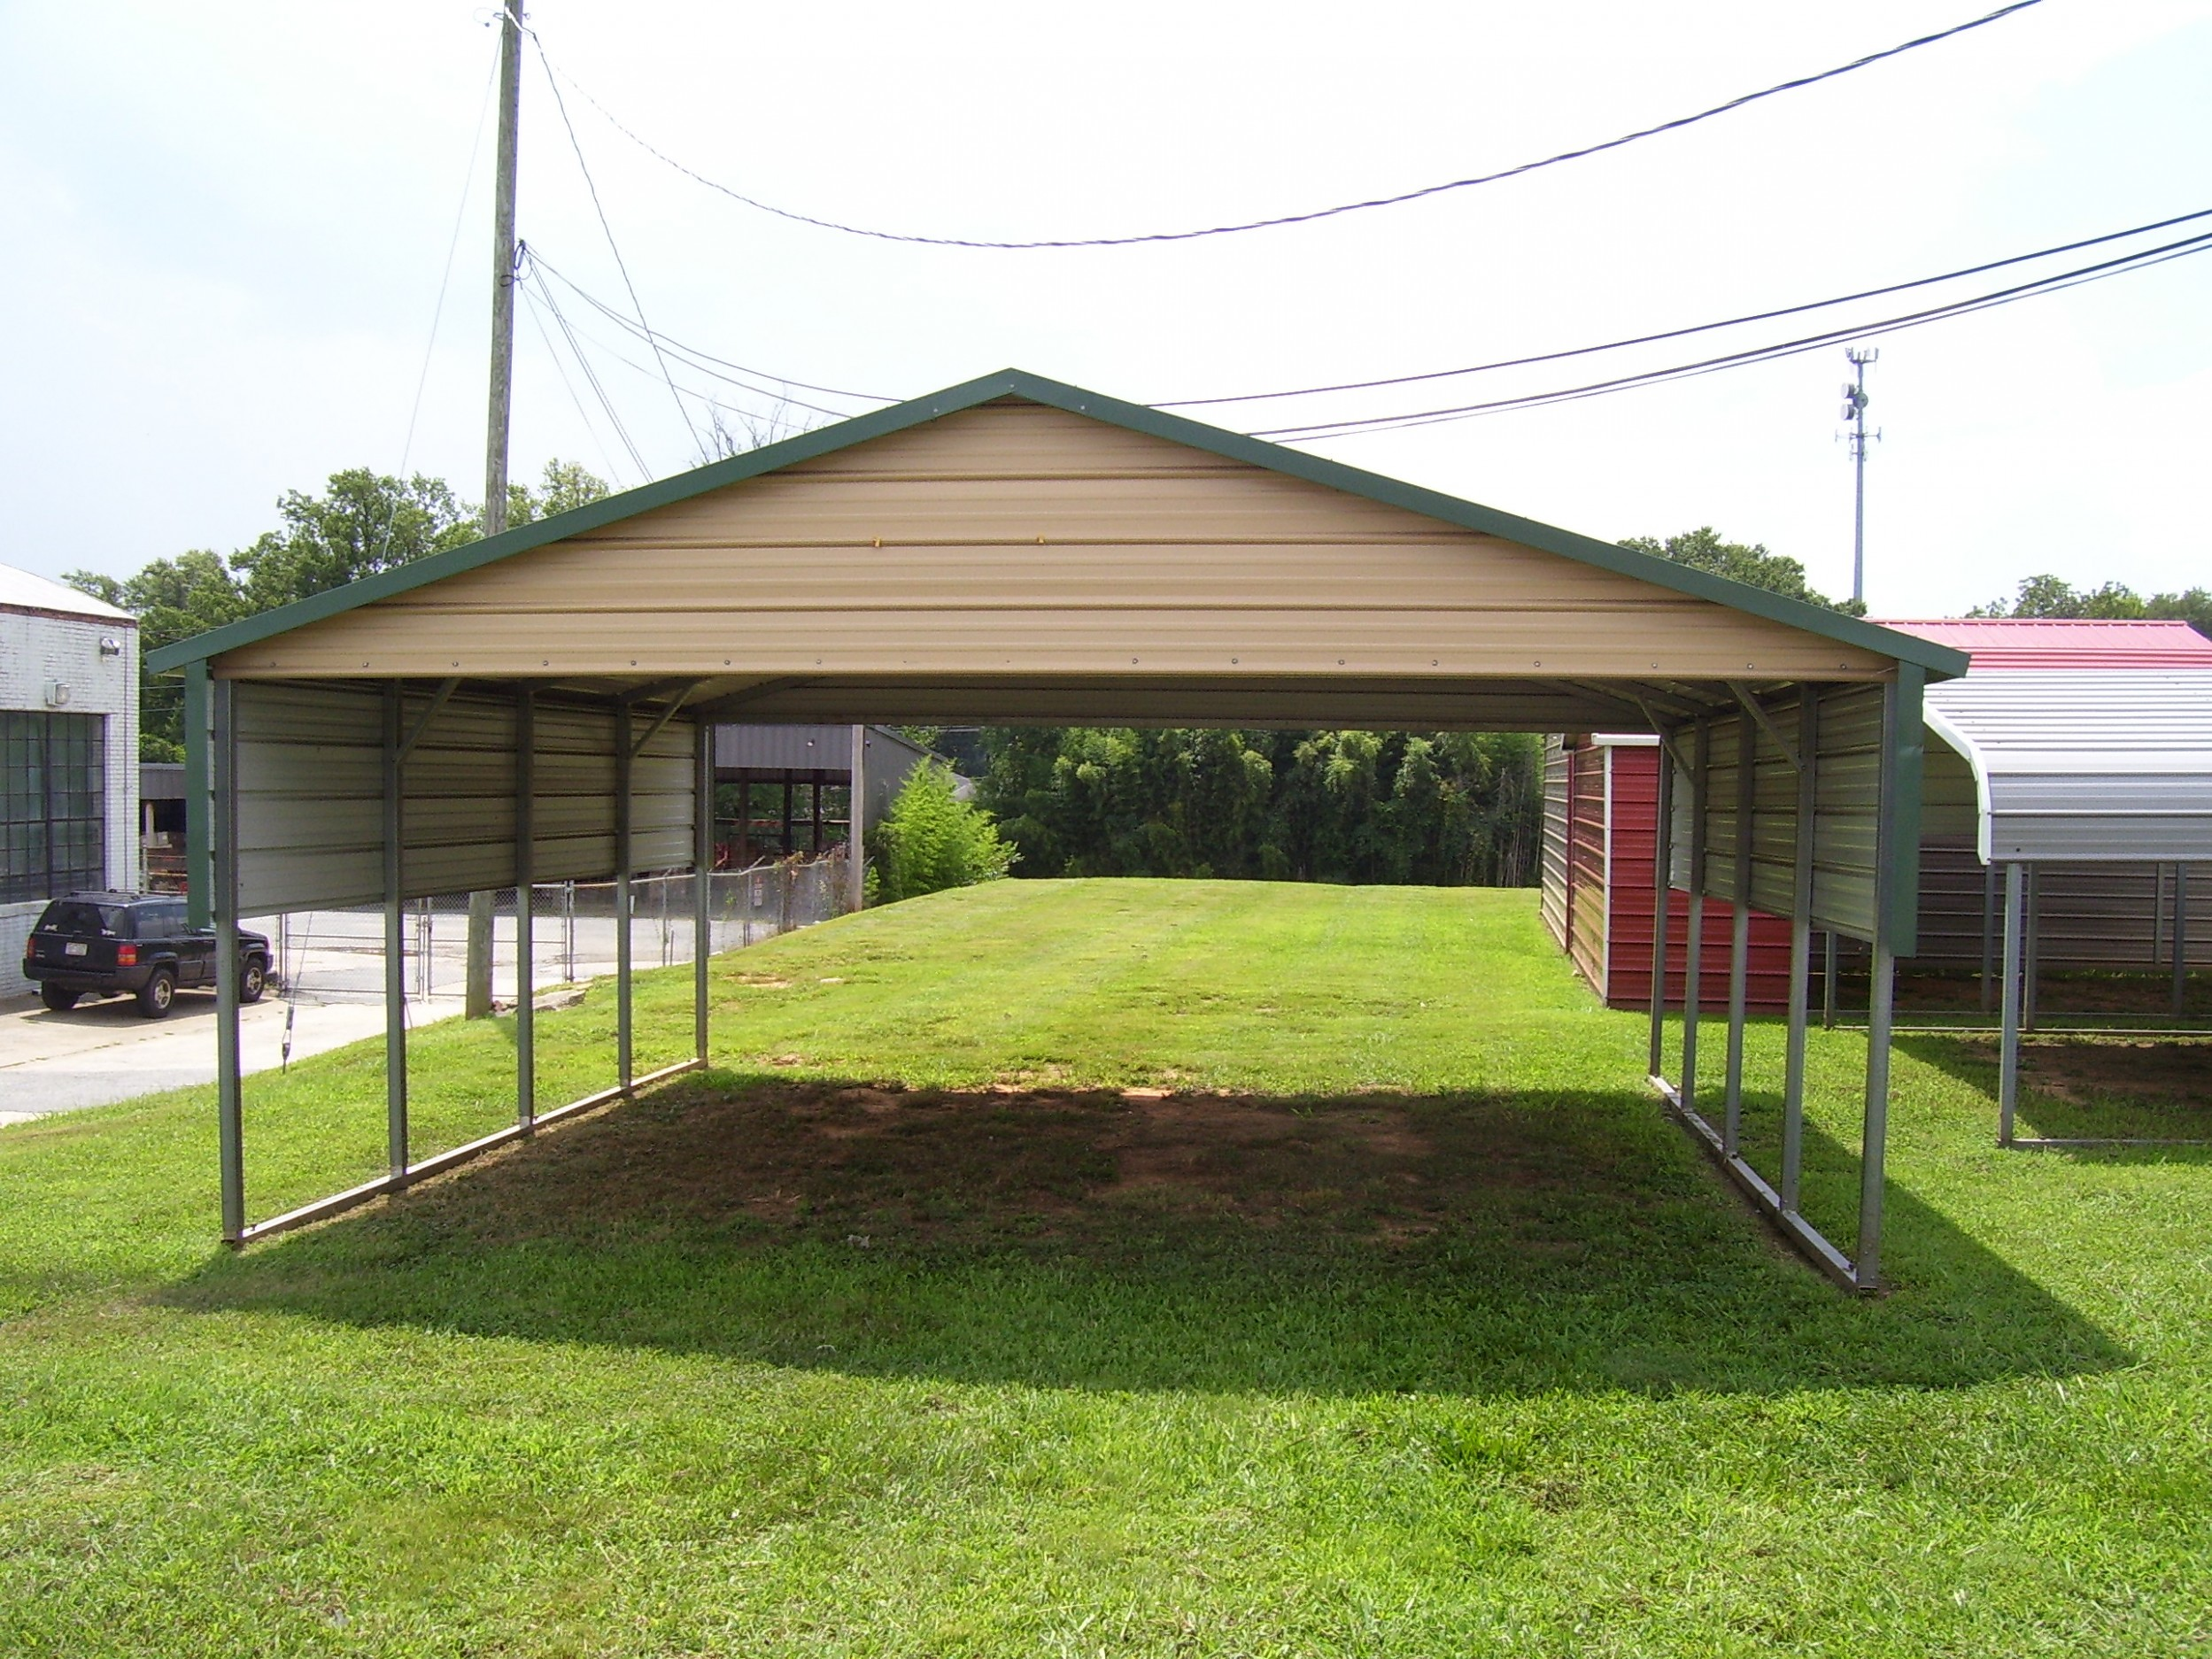 1517755545-cheap-garage-kits-time-lapse-of-steel-building-being-erected-for-inexpensive-carport-kits.jpg